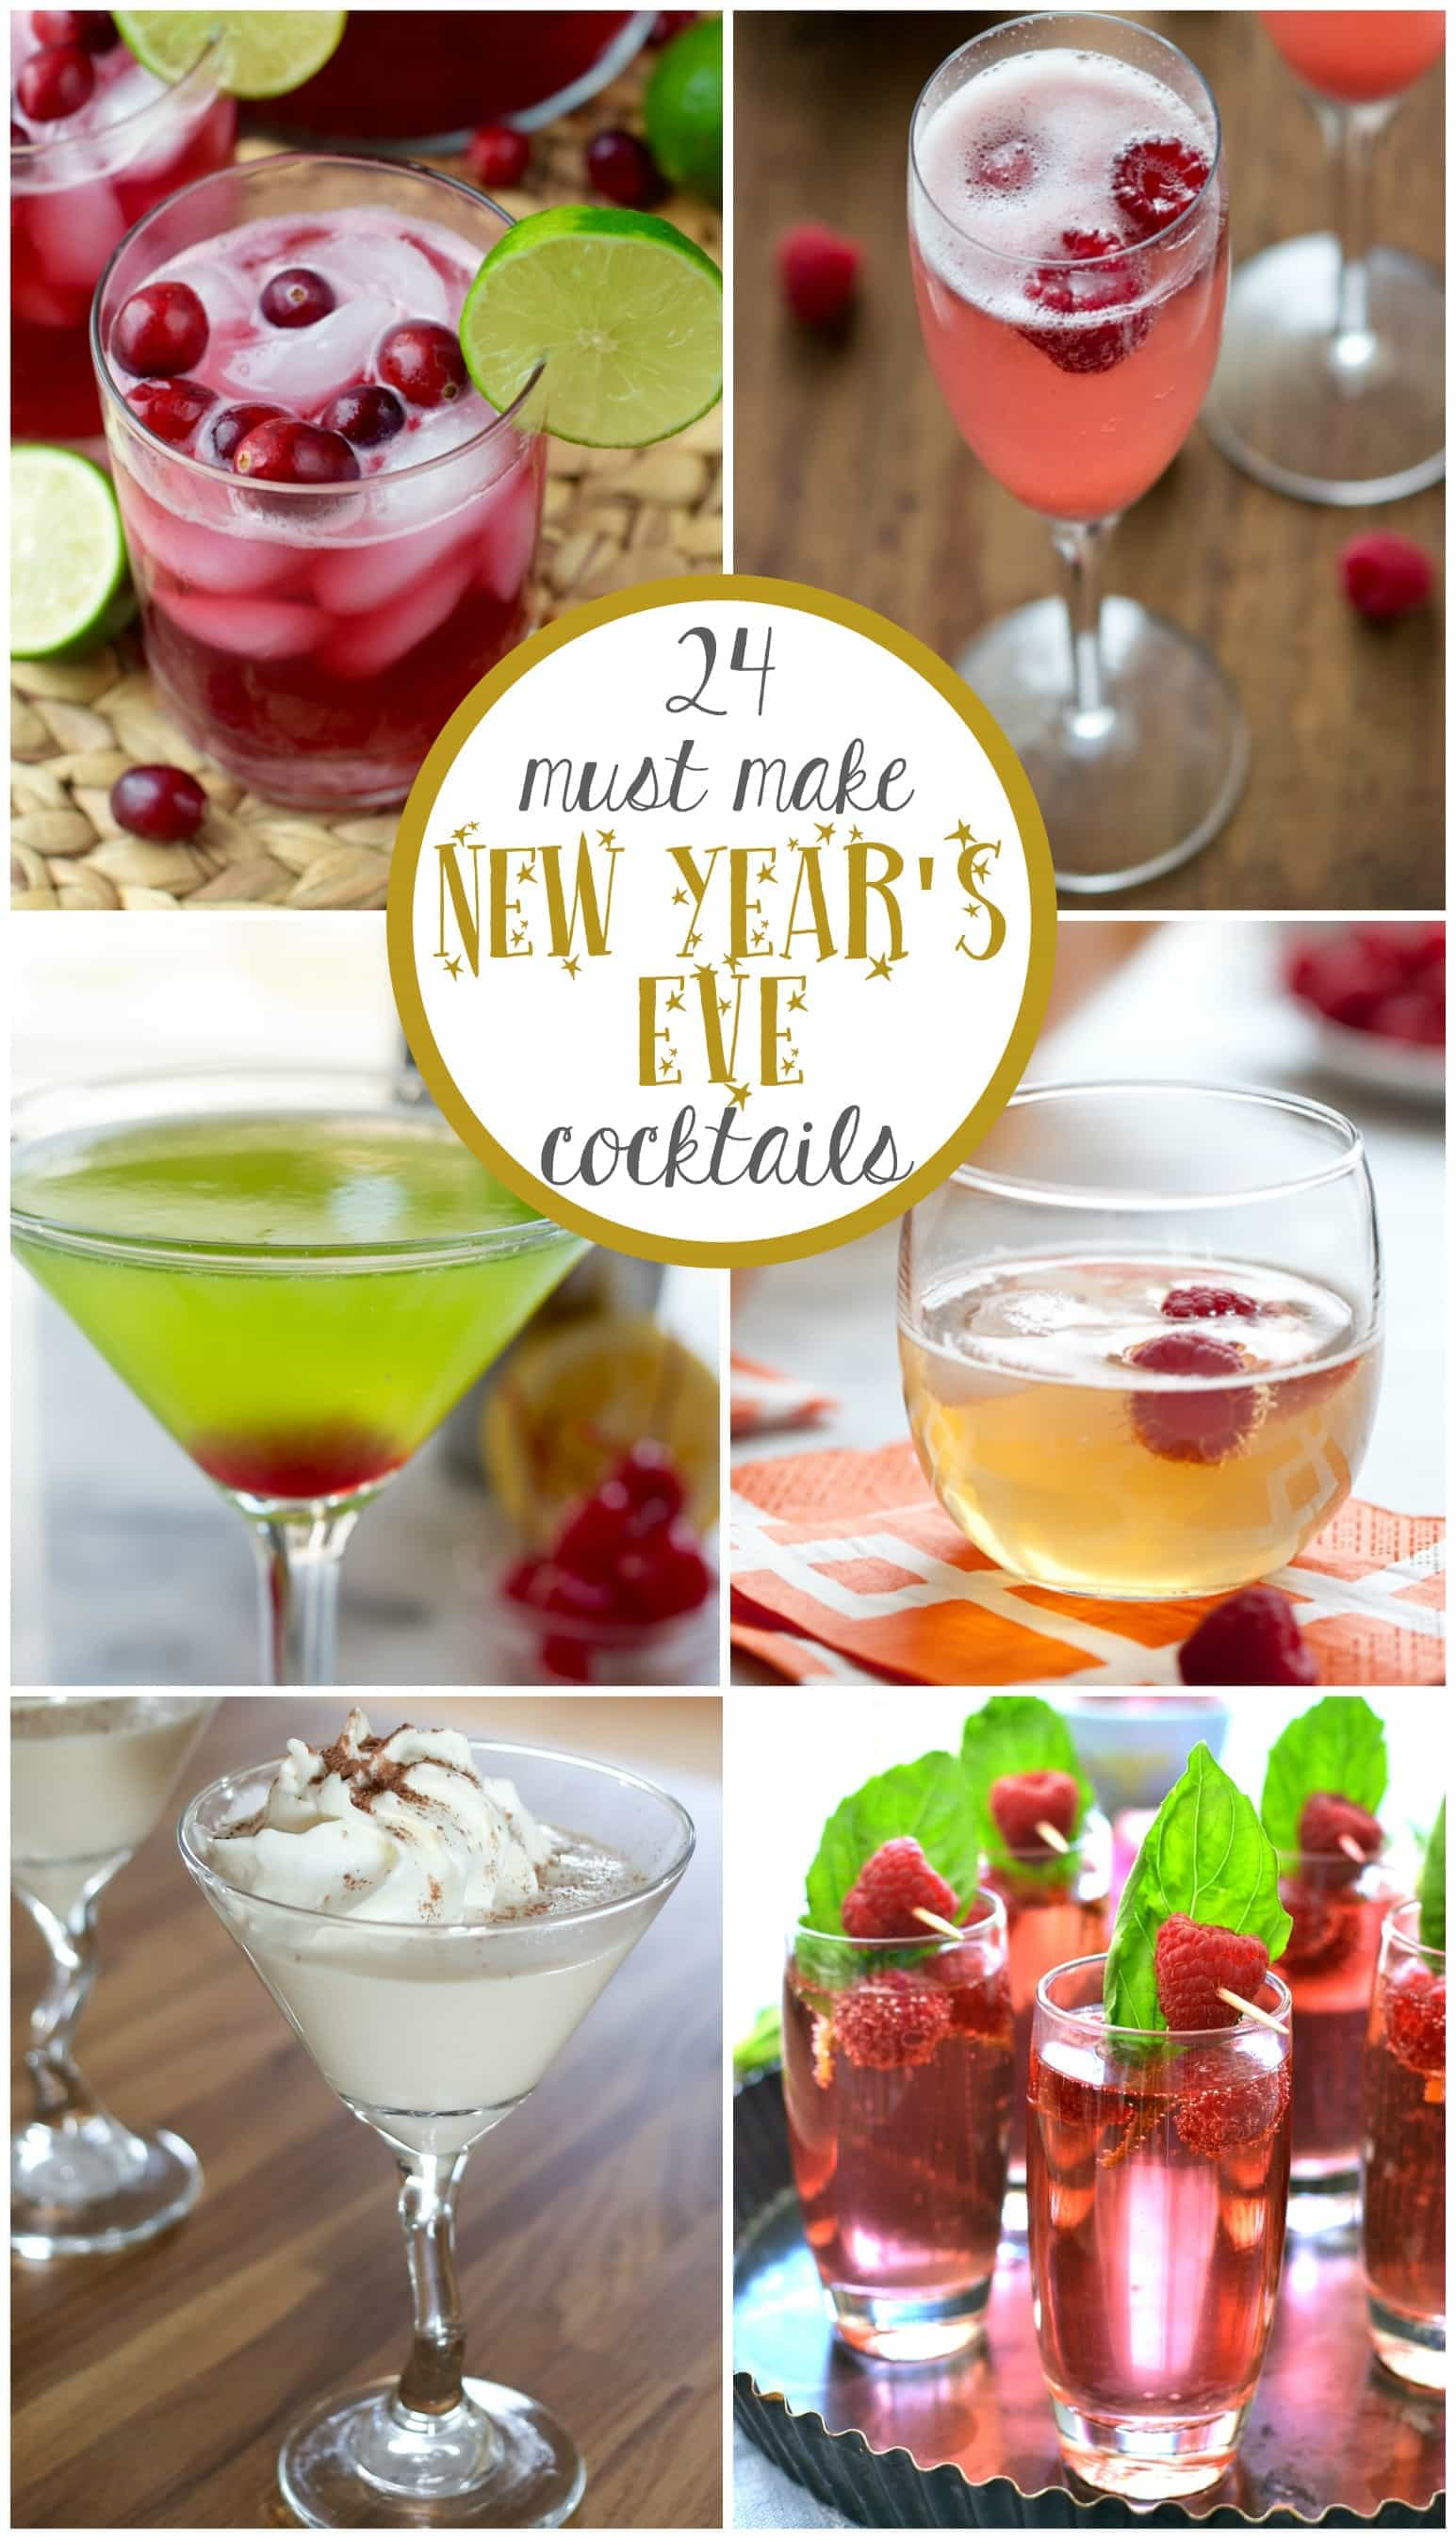 Must Drink New Year's Eve Cocktail Recipes